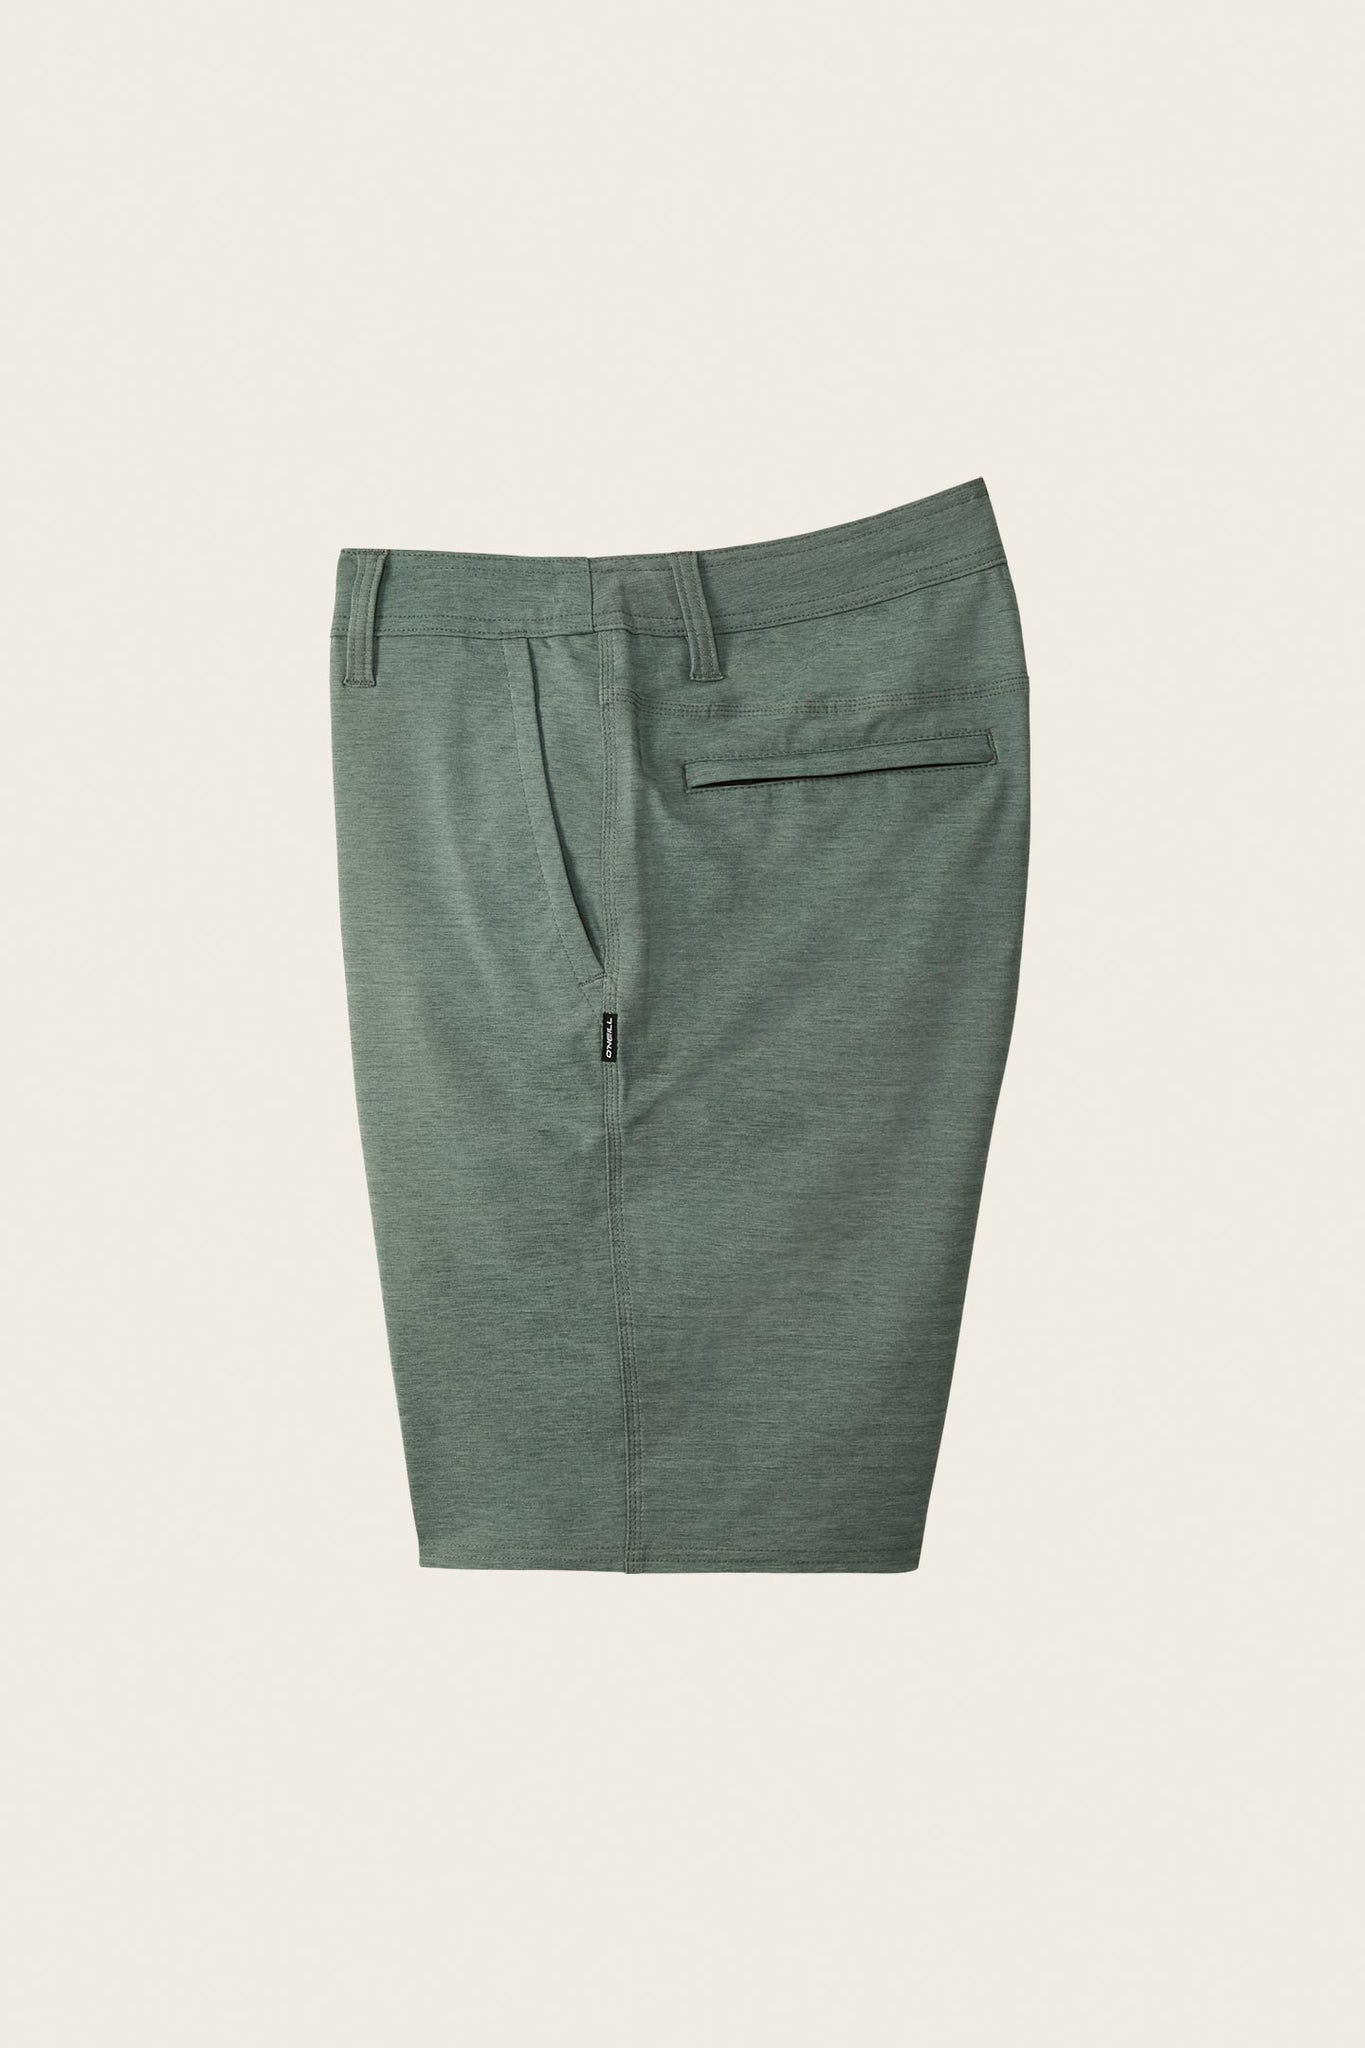 Locked Herringbone Hybrid Shorts - Washed Ivy | O'Neill